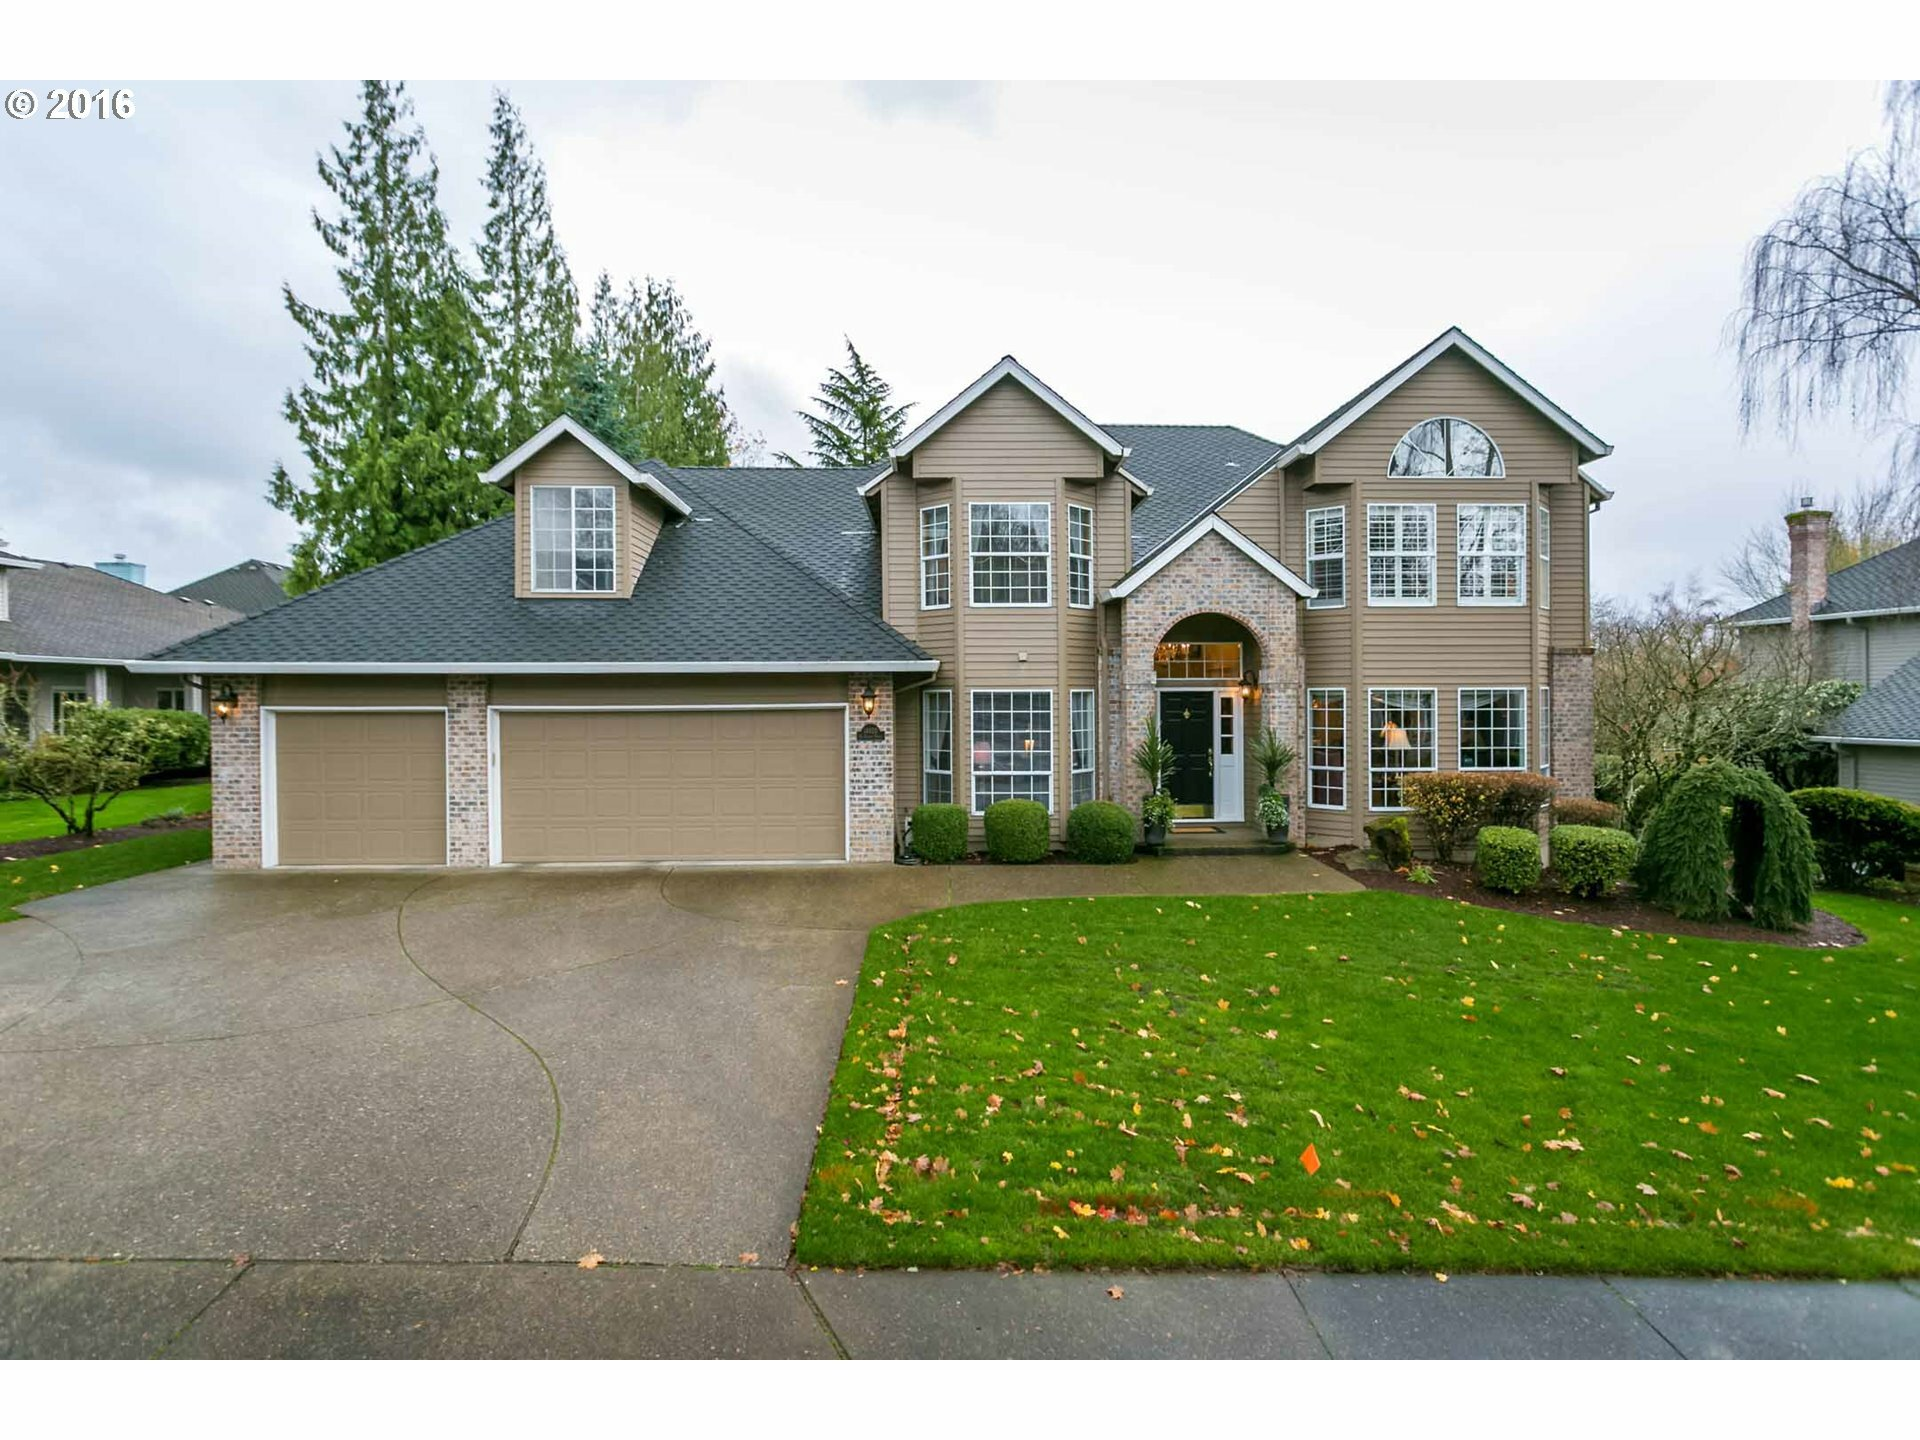 14920 Sw Ashley Dr, Tigard, OR - USA (photo 1)